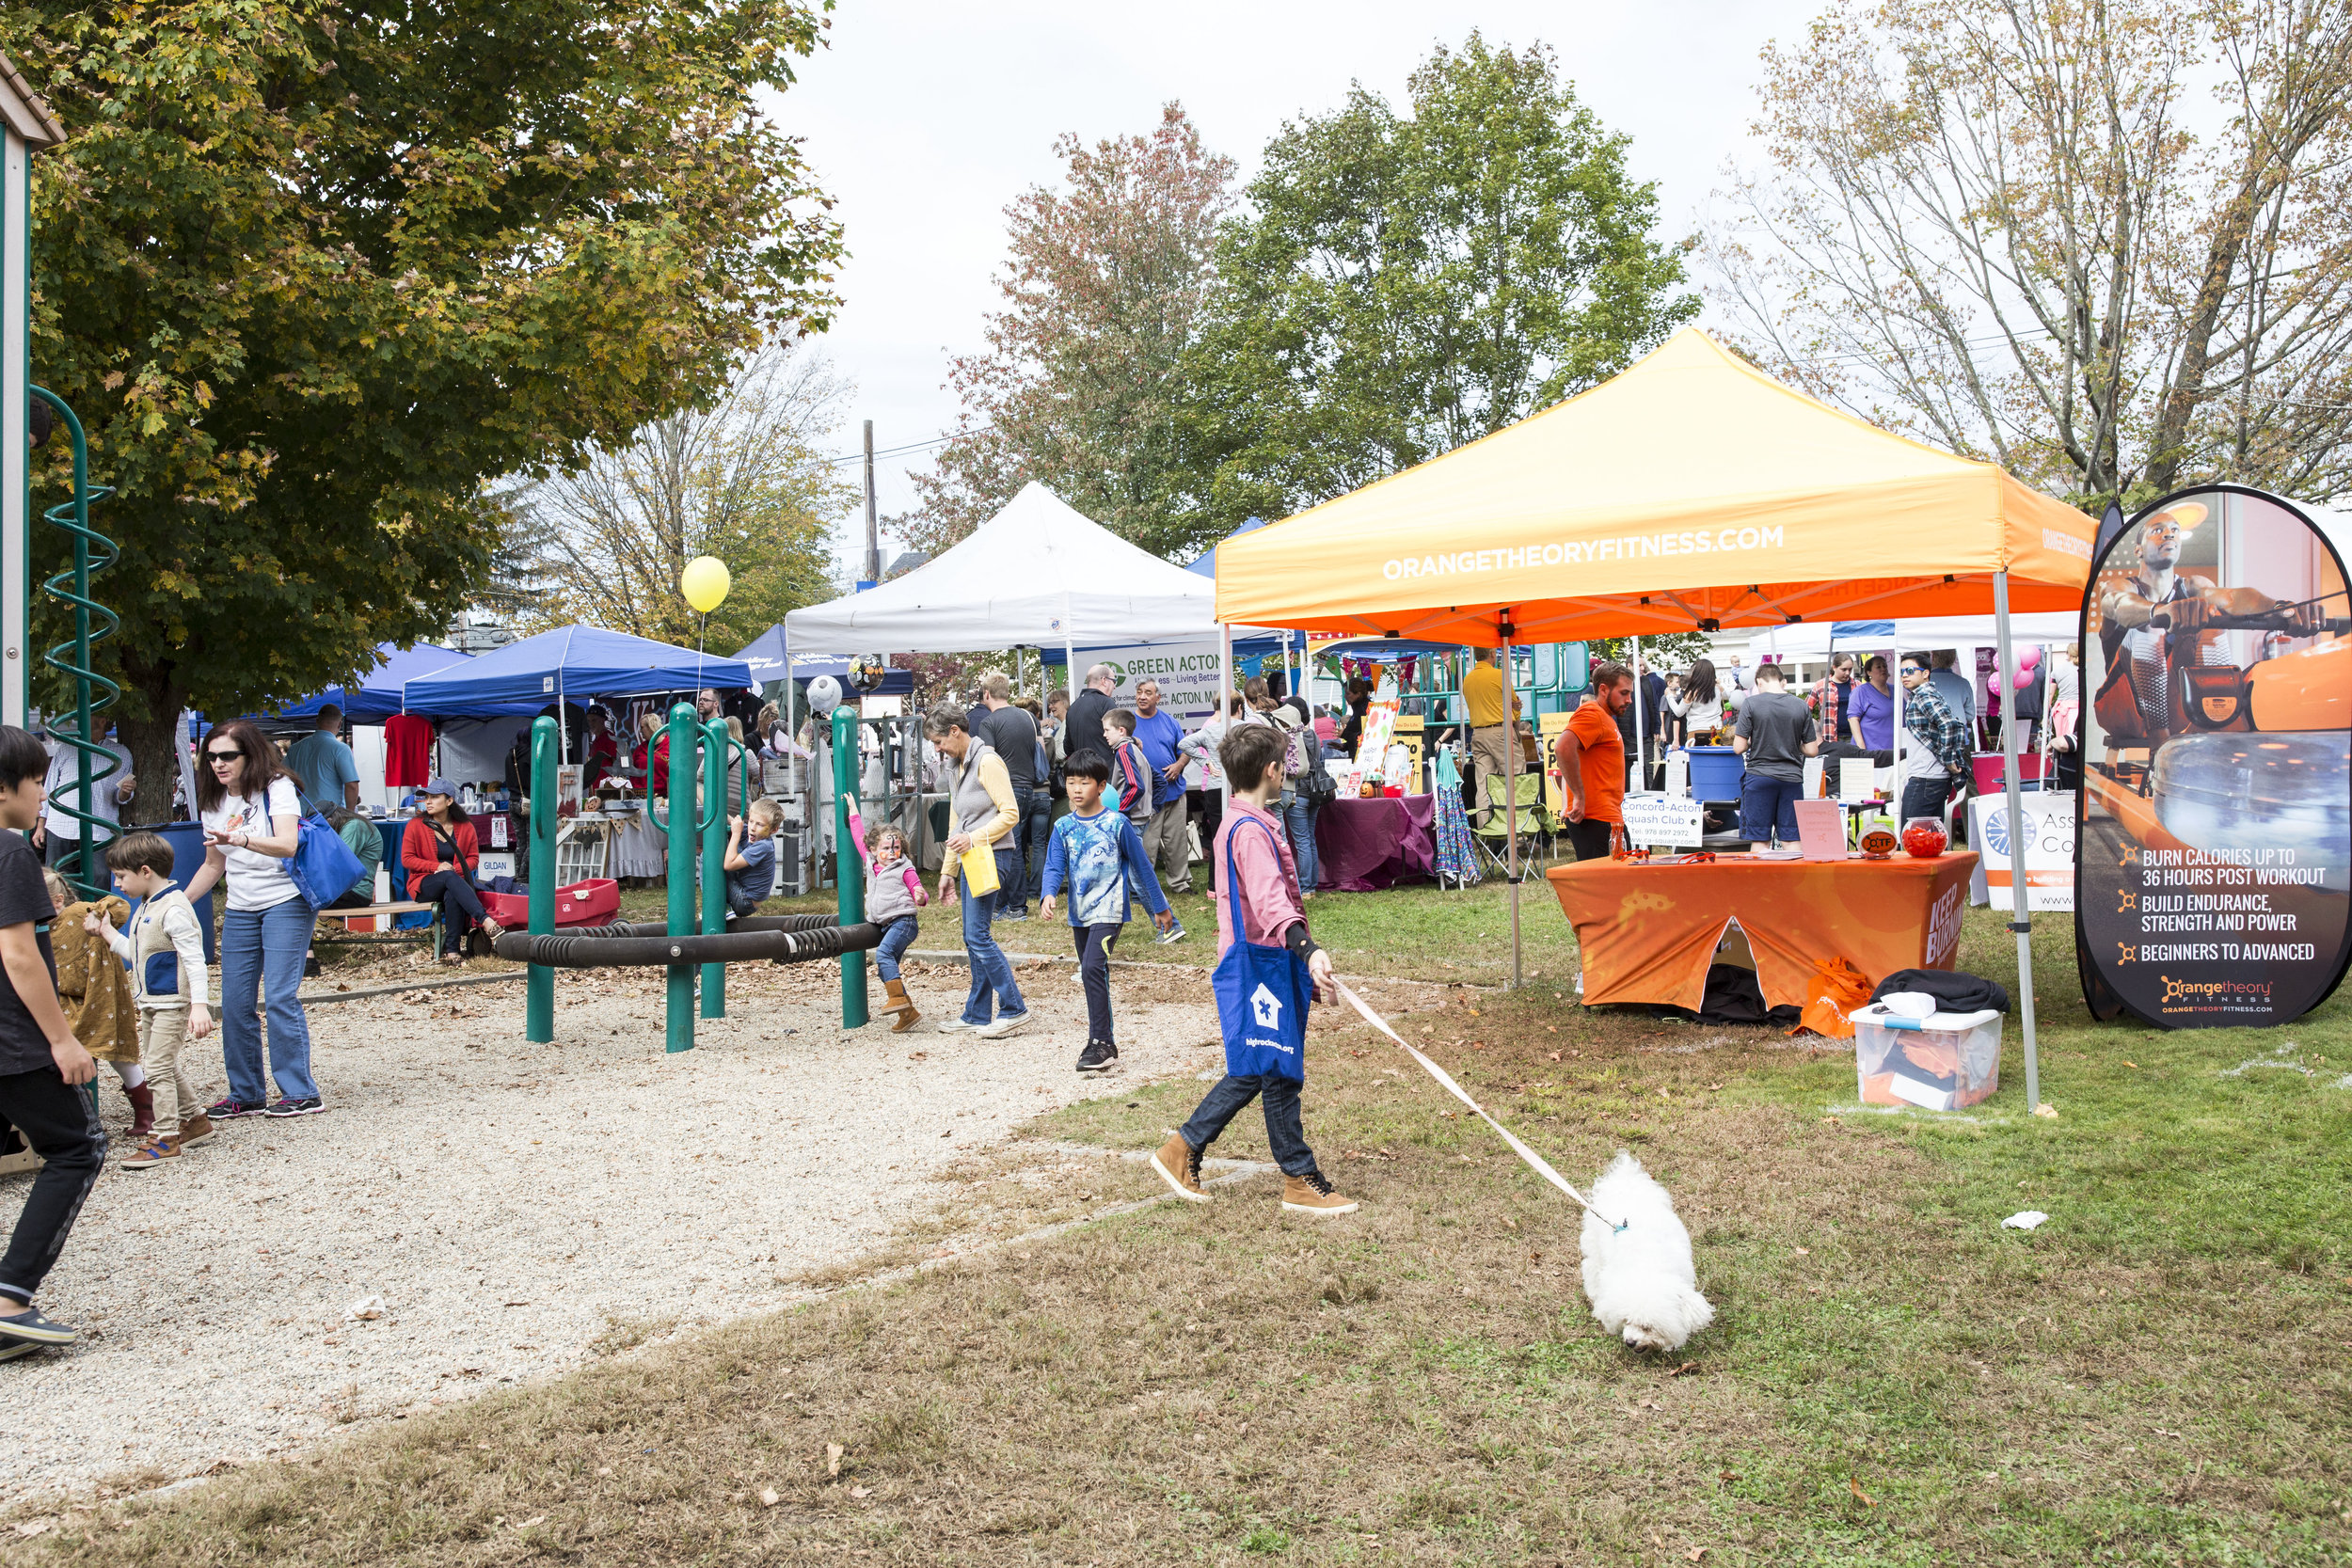 eventS - We are proud to organize two village wide events annually (Oktoberfest & Holiday Stroll) as well as our Marketing Mingles for WAVMA members and guests.